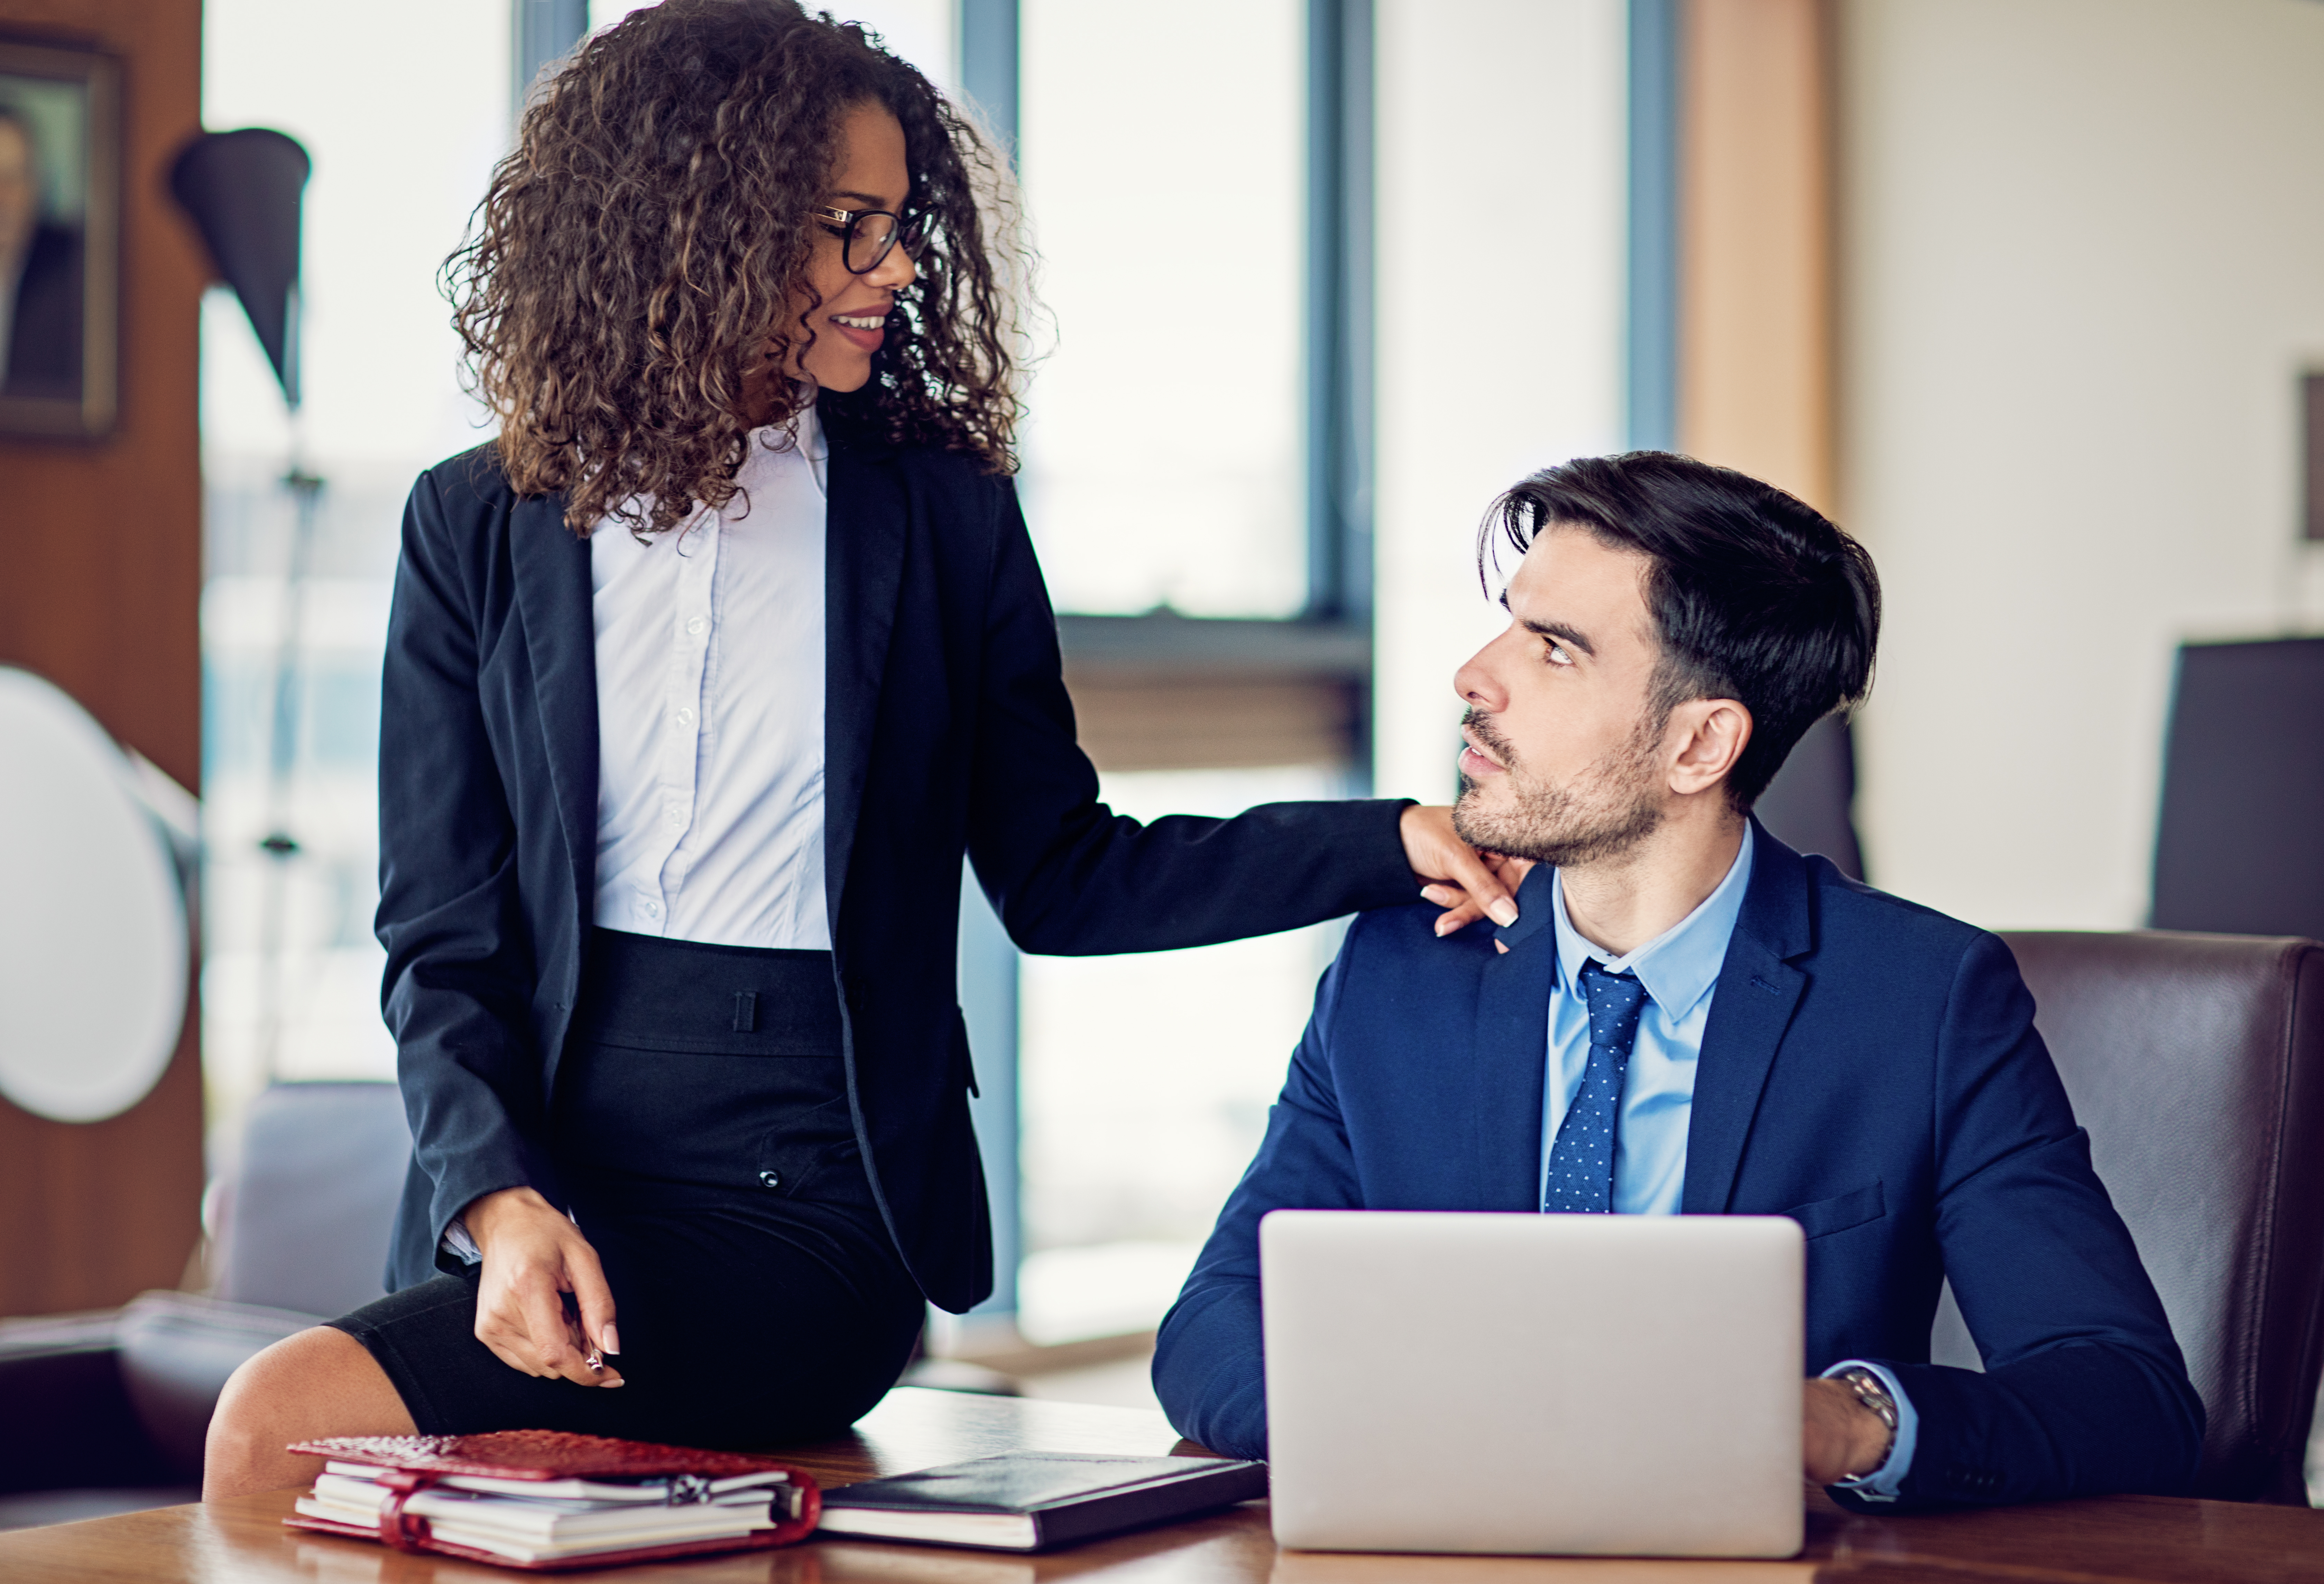 How to Know If Your Boss Has a Crush on You | Career Trend